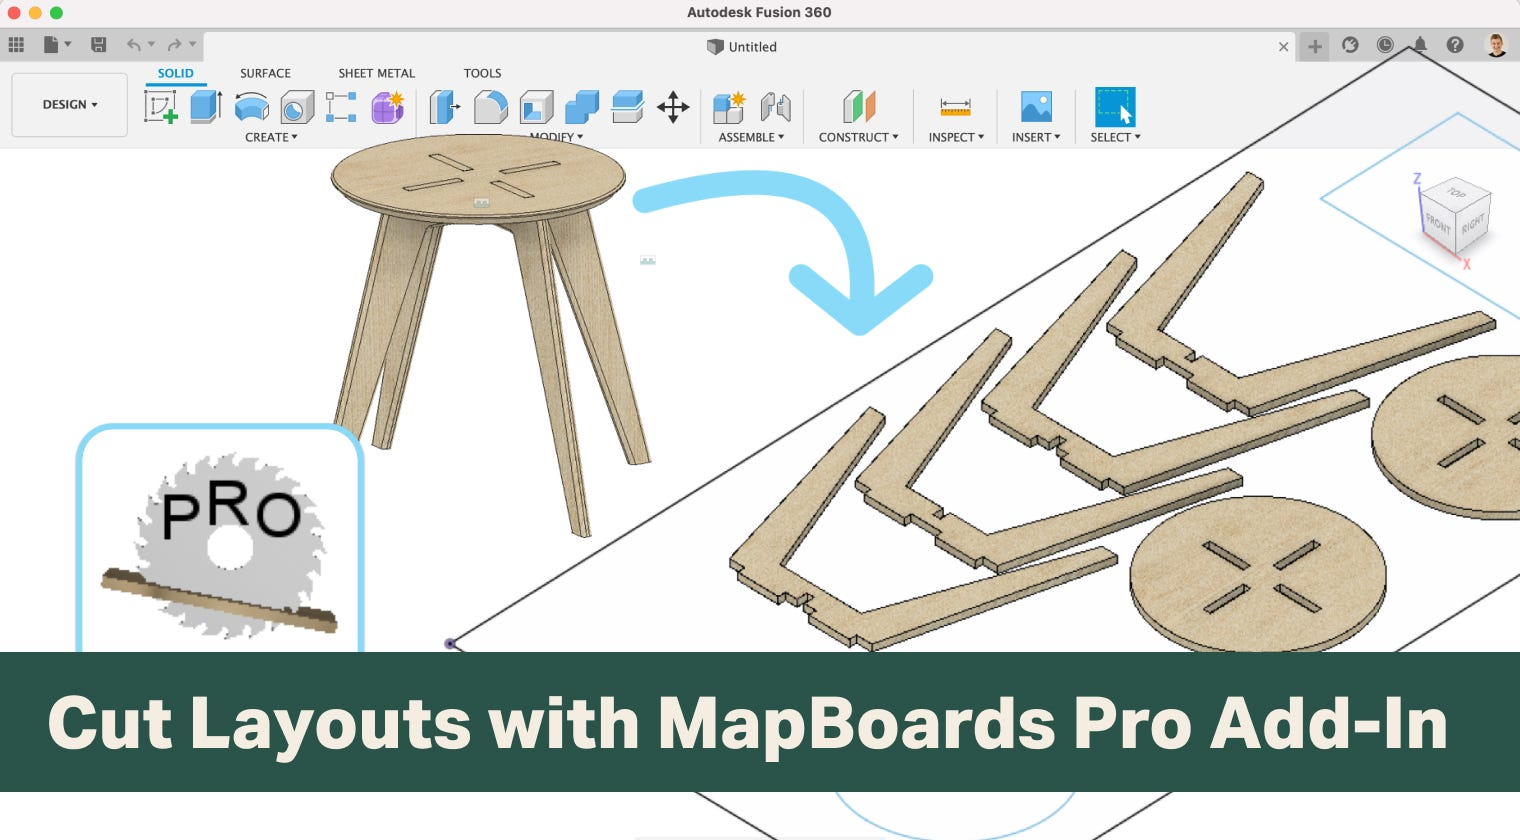 Cut Layouts with MapBoards Pro Add-In